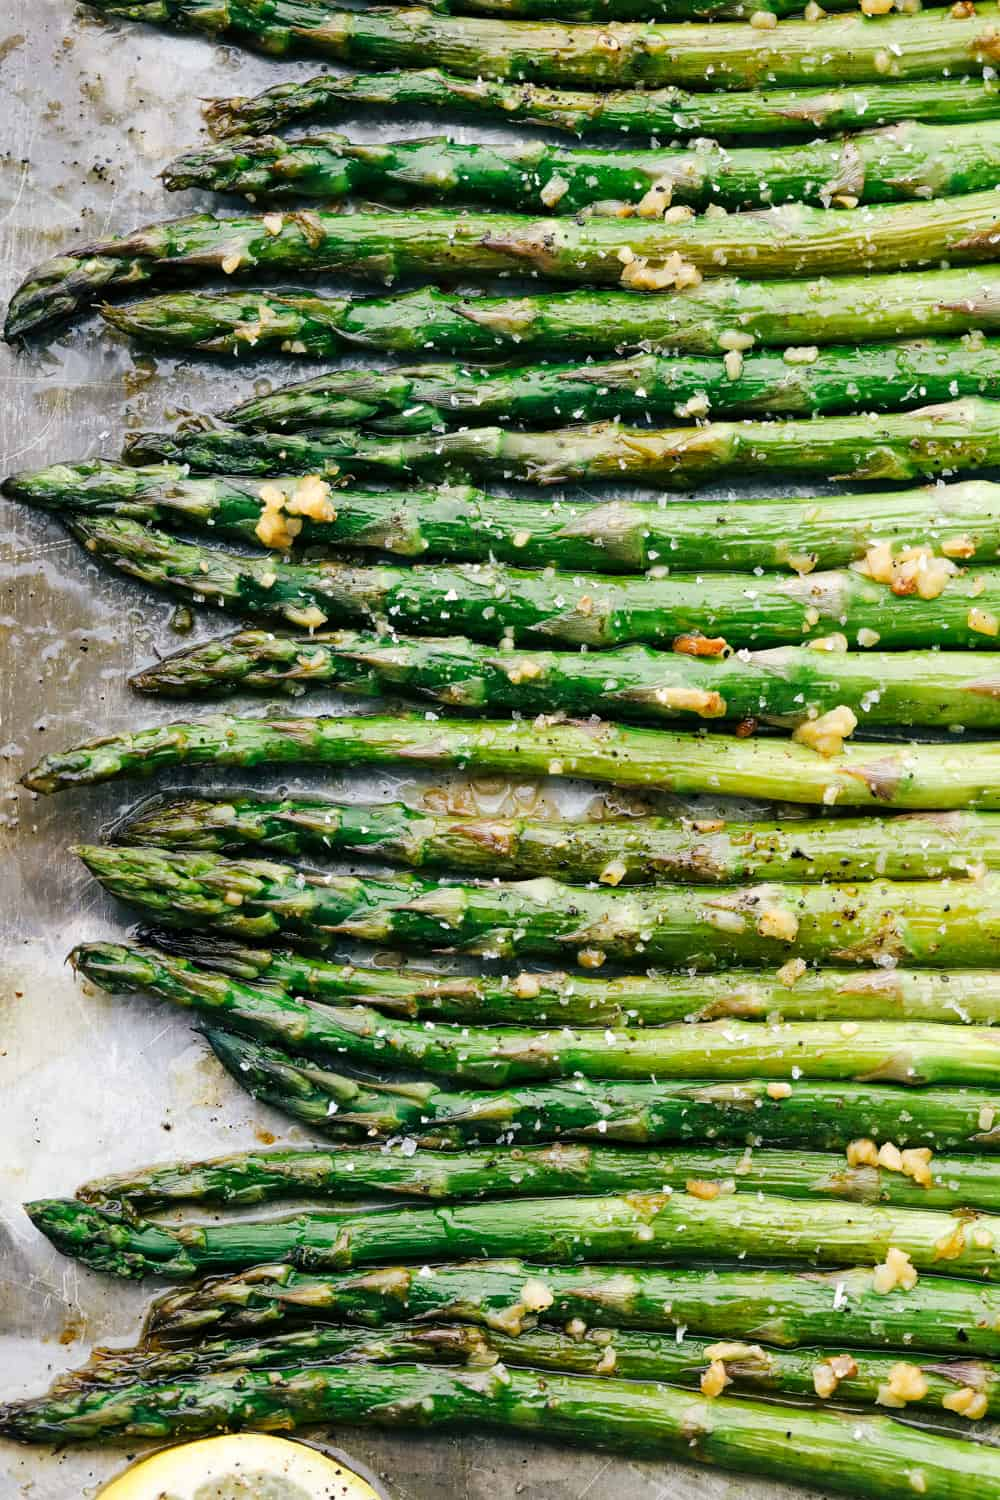 Asparagus laying flat on a baking sheet showing just he heads of the asparagus.